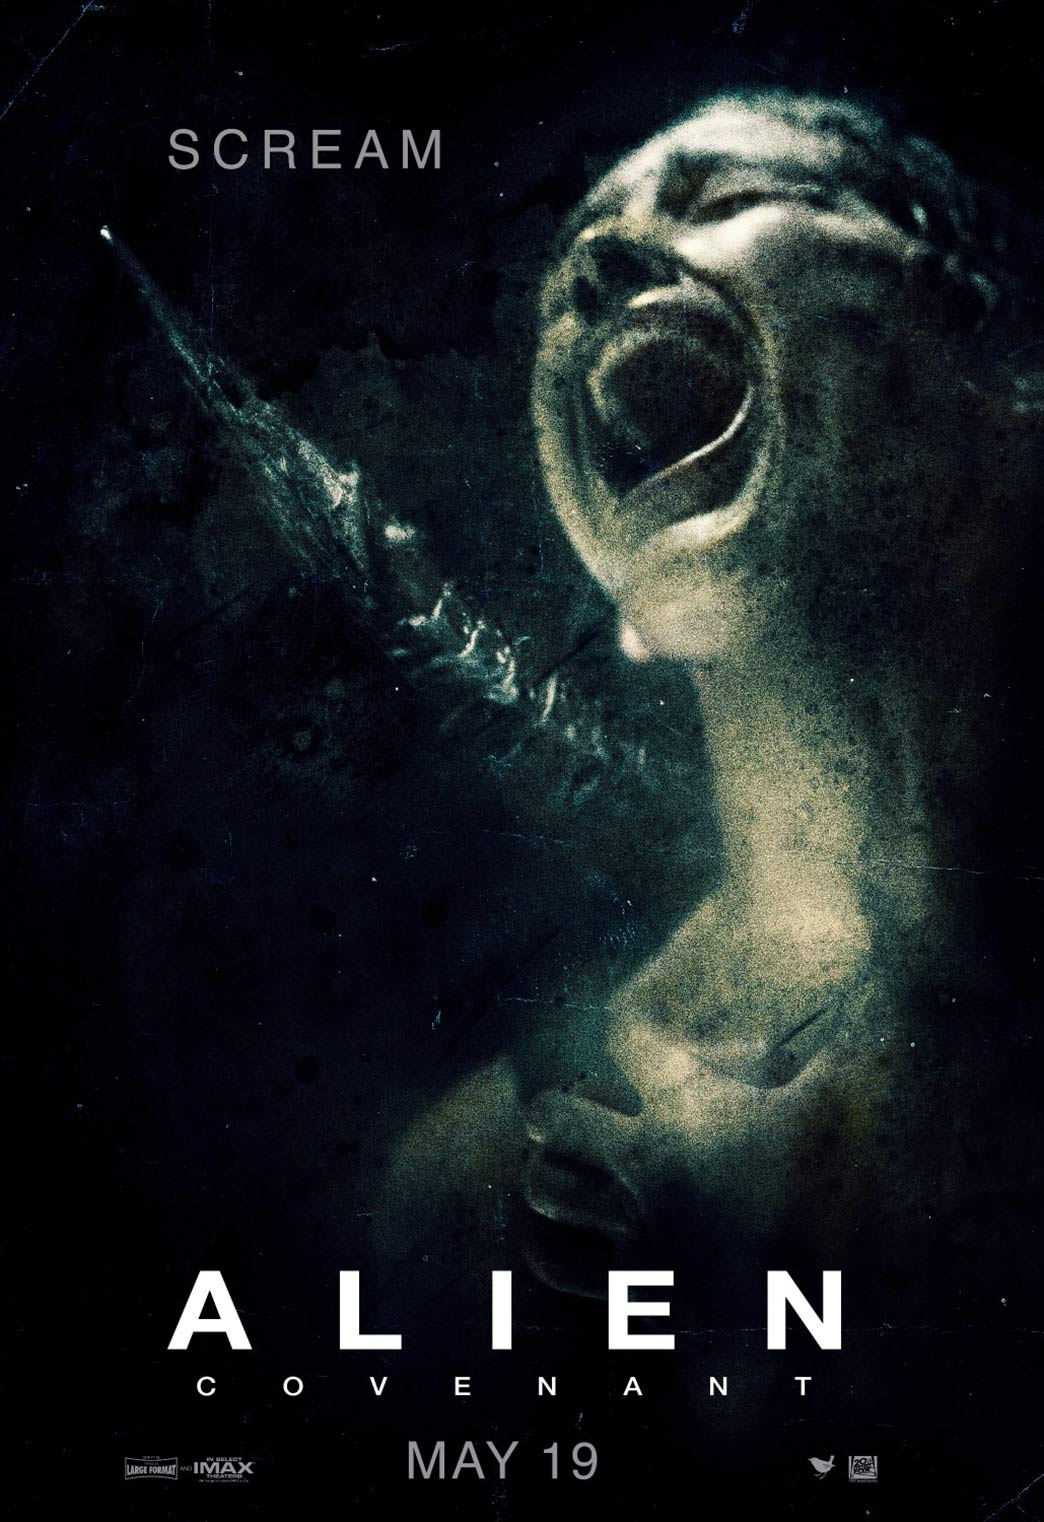 alien_covenant_poster_2017_05.jpg